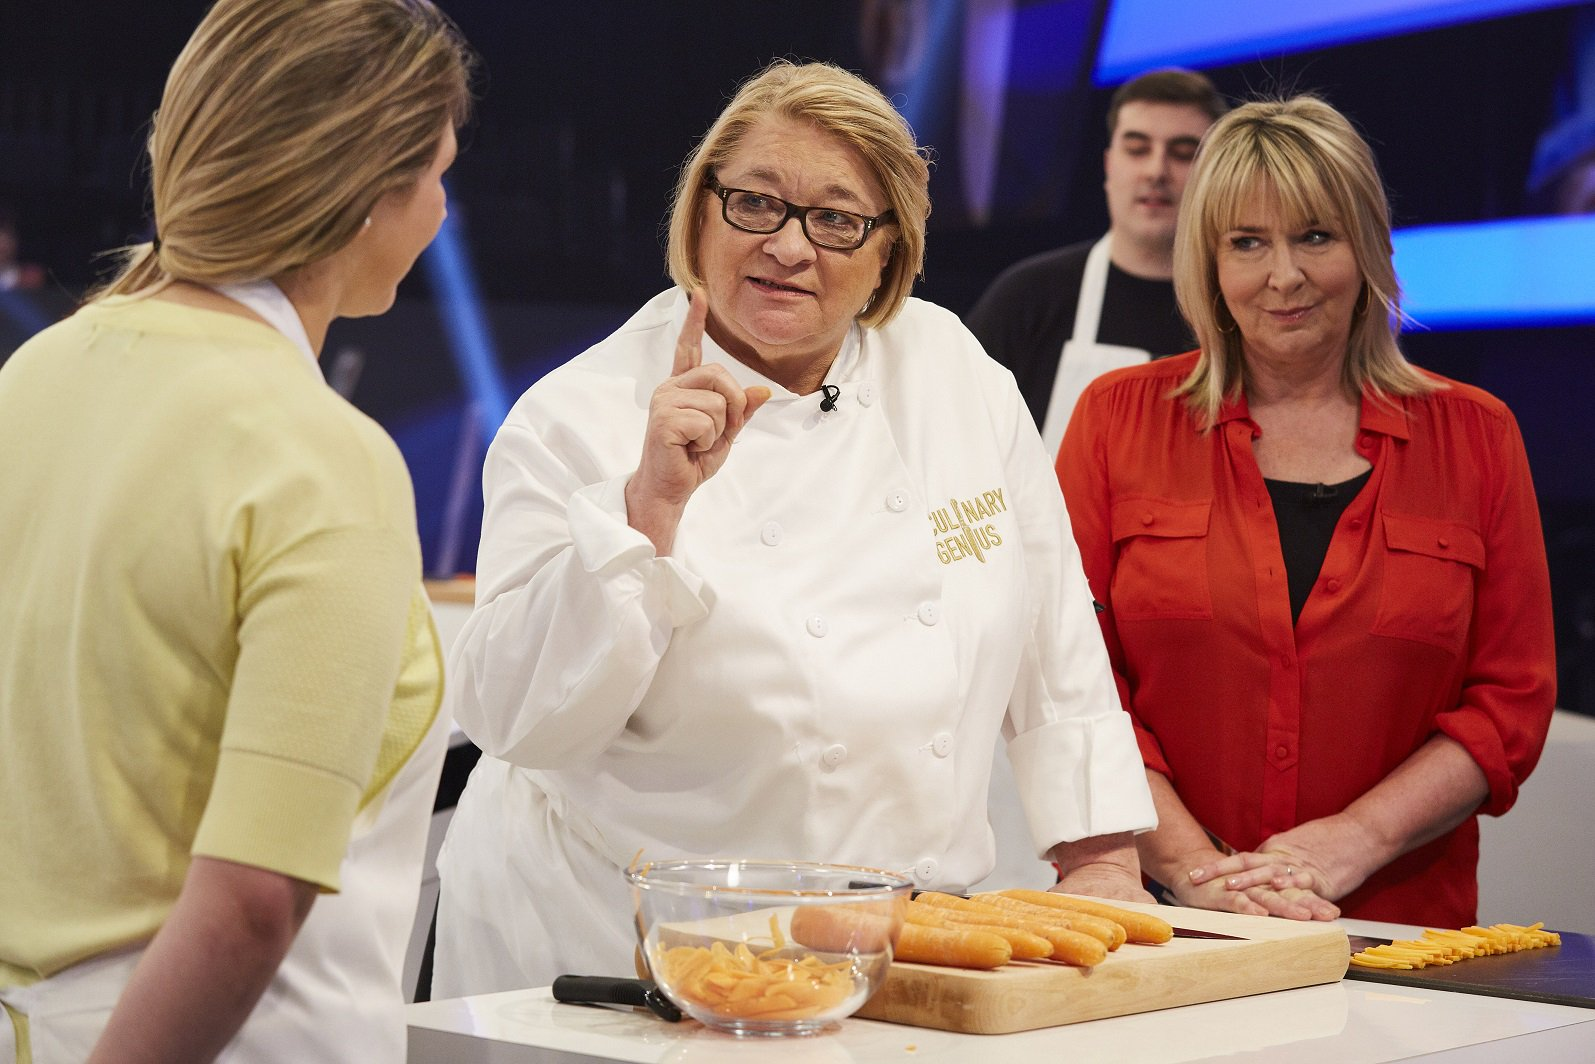 This week's #CulinaryGenius host is @RosemaryShrager - check out the new episodes every weekday @ITV at 3 PM ! https://t.co/b0JV6JTjC9